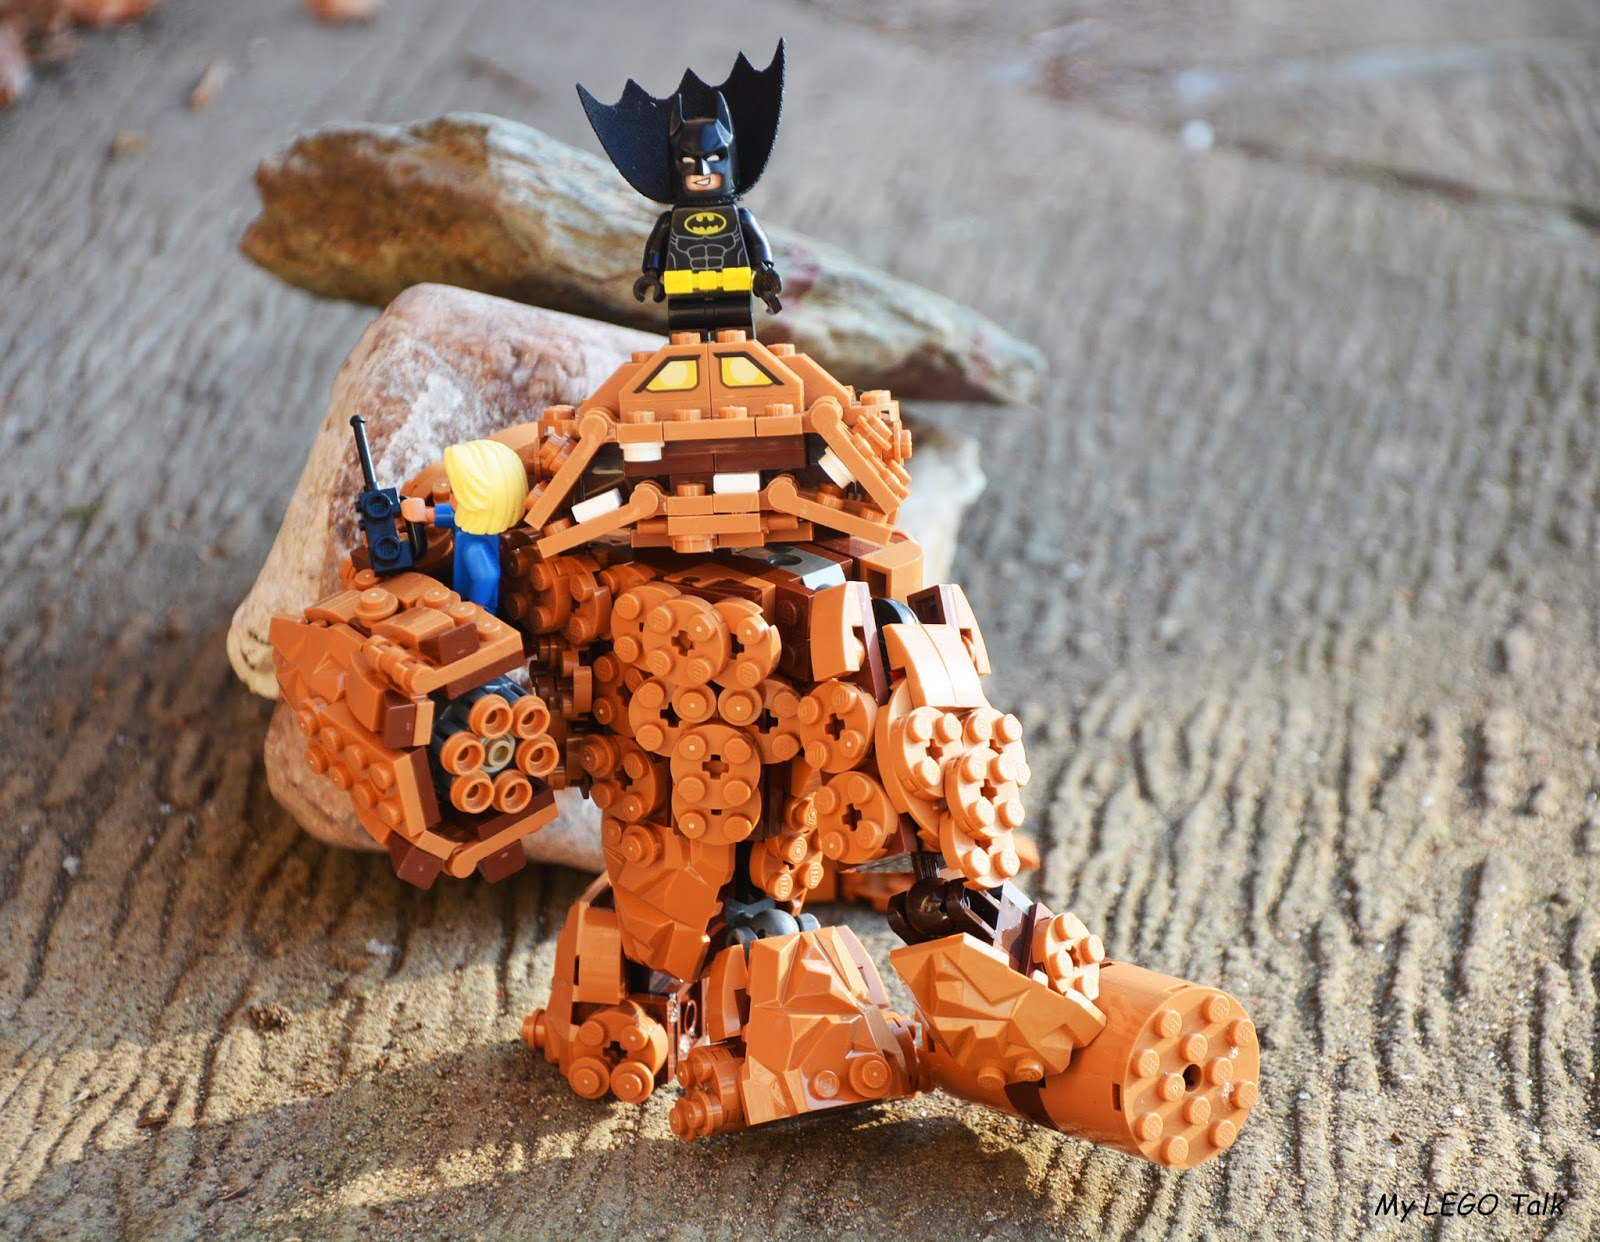 Set 70904 - The LEGO Batman Movie, Clayface Splat Attack ...